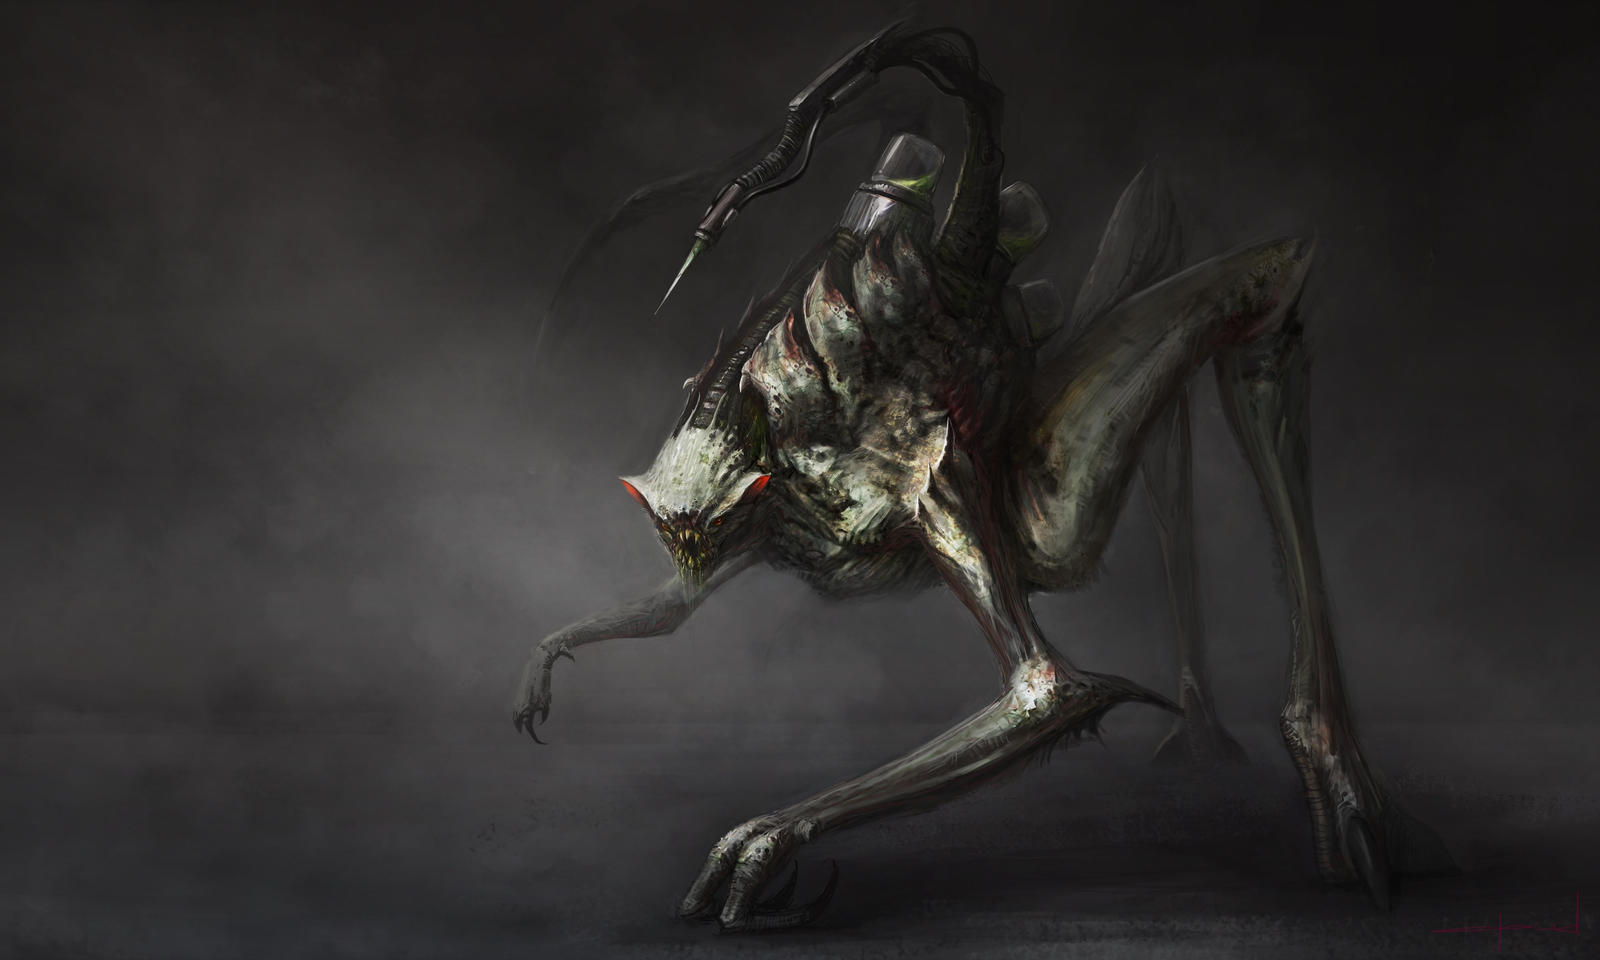 Thermoreceptor by Darkcloud013